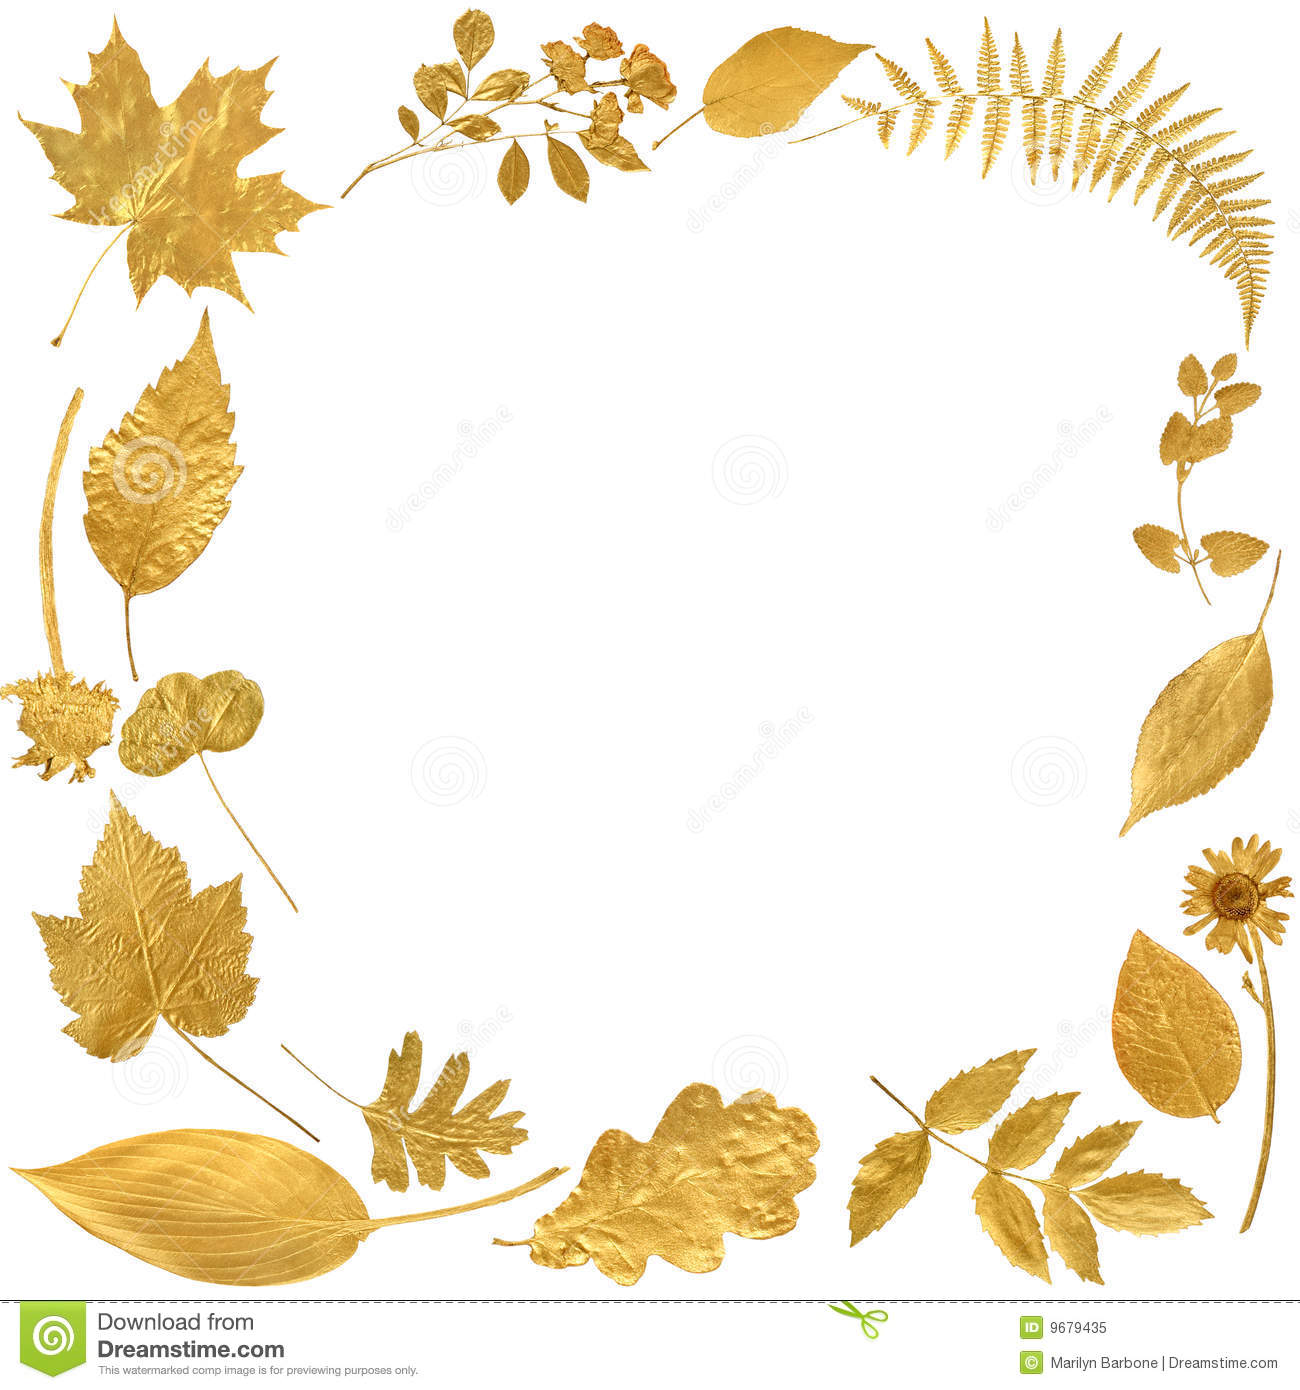 Golden Leaf Border Royalty Free Stock Photo - Image: 9679435